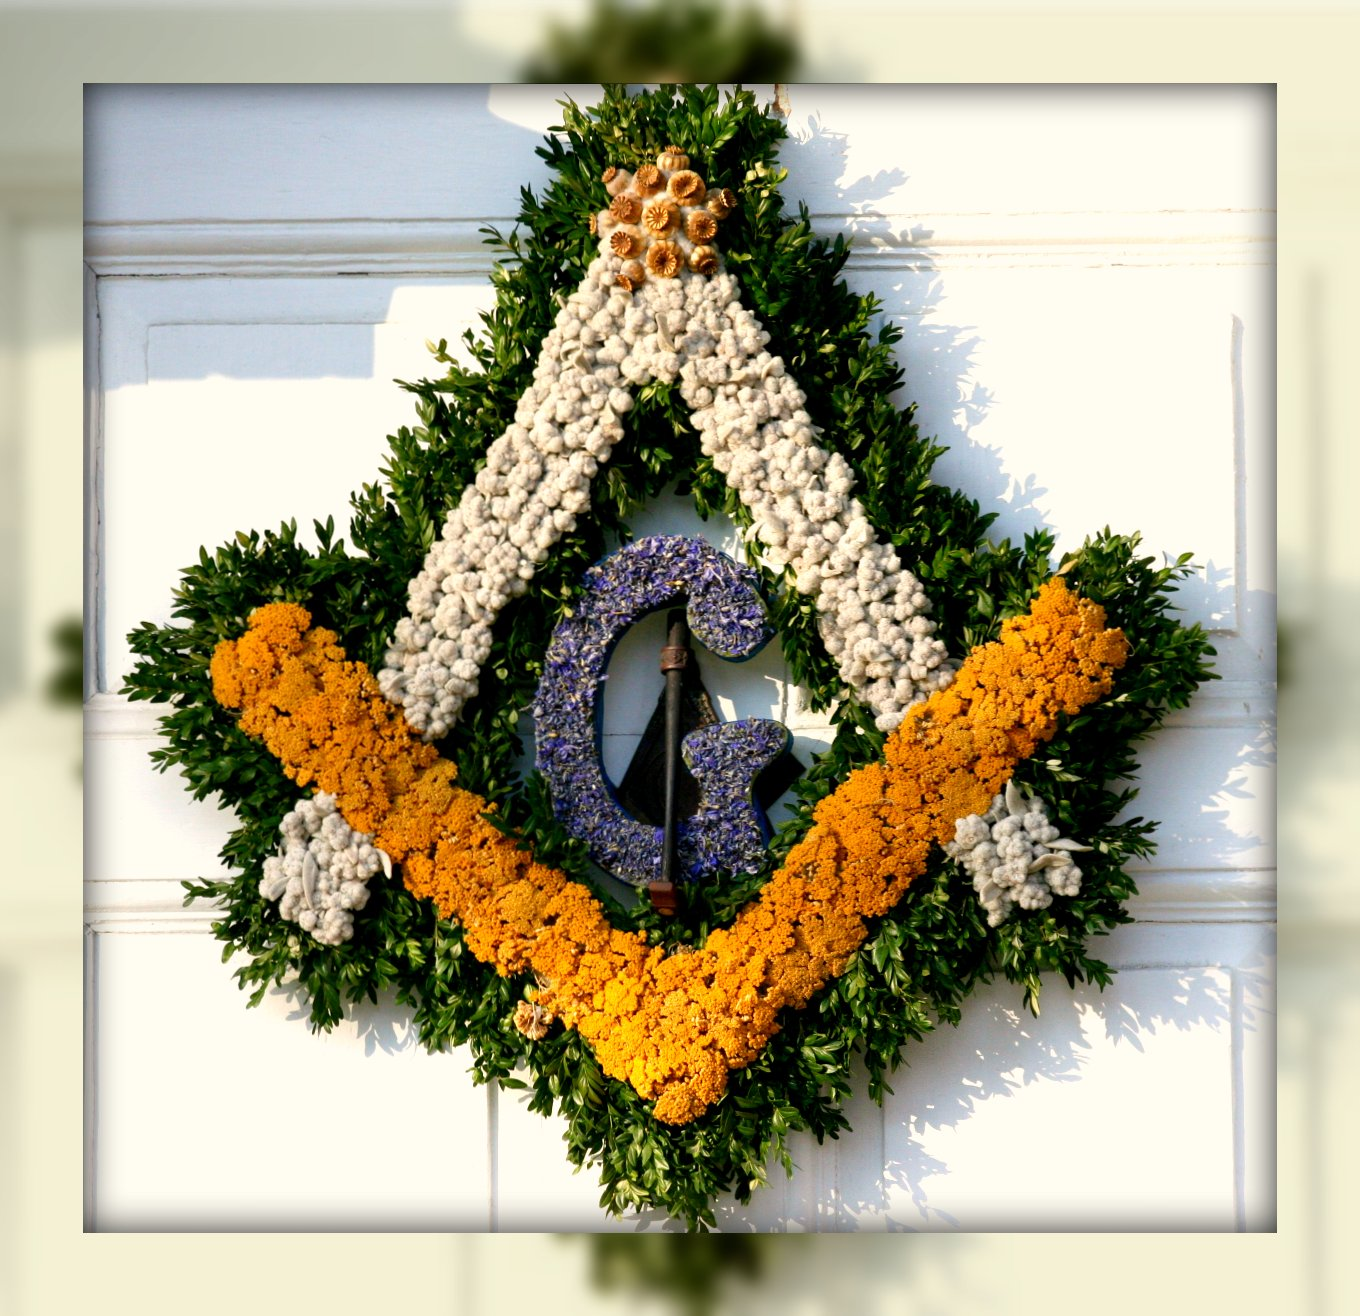 Williamsburg Christmas Decorating Ideas: Living In Williamsburg, Virginia: Masonic Temple's